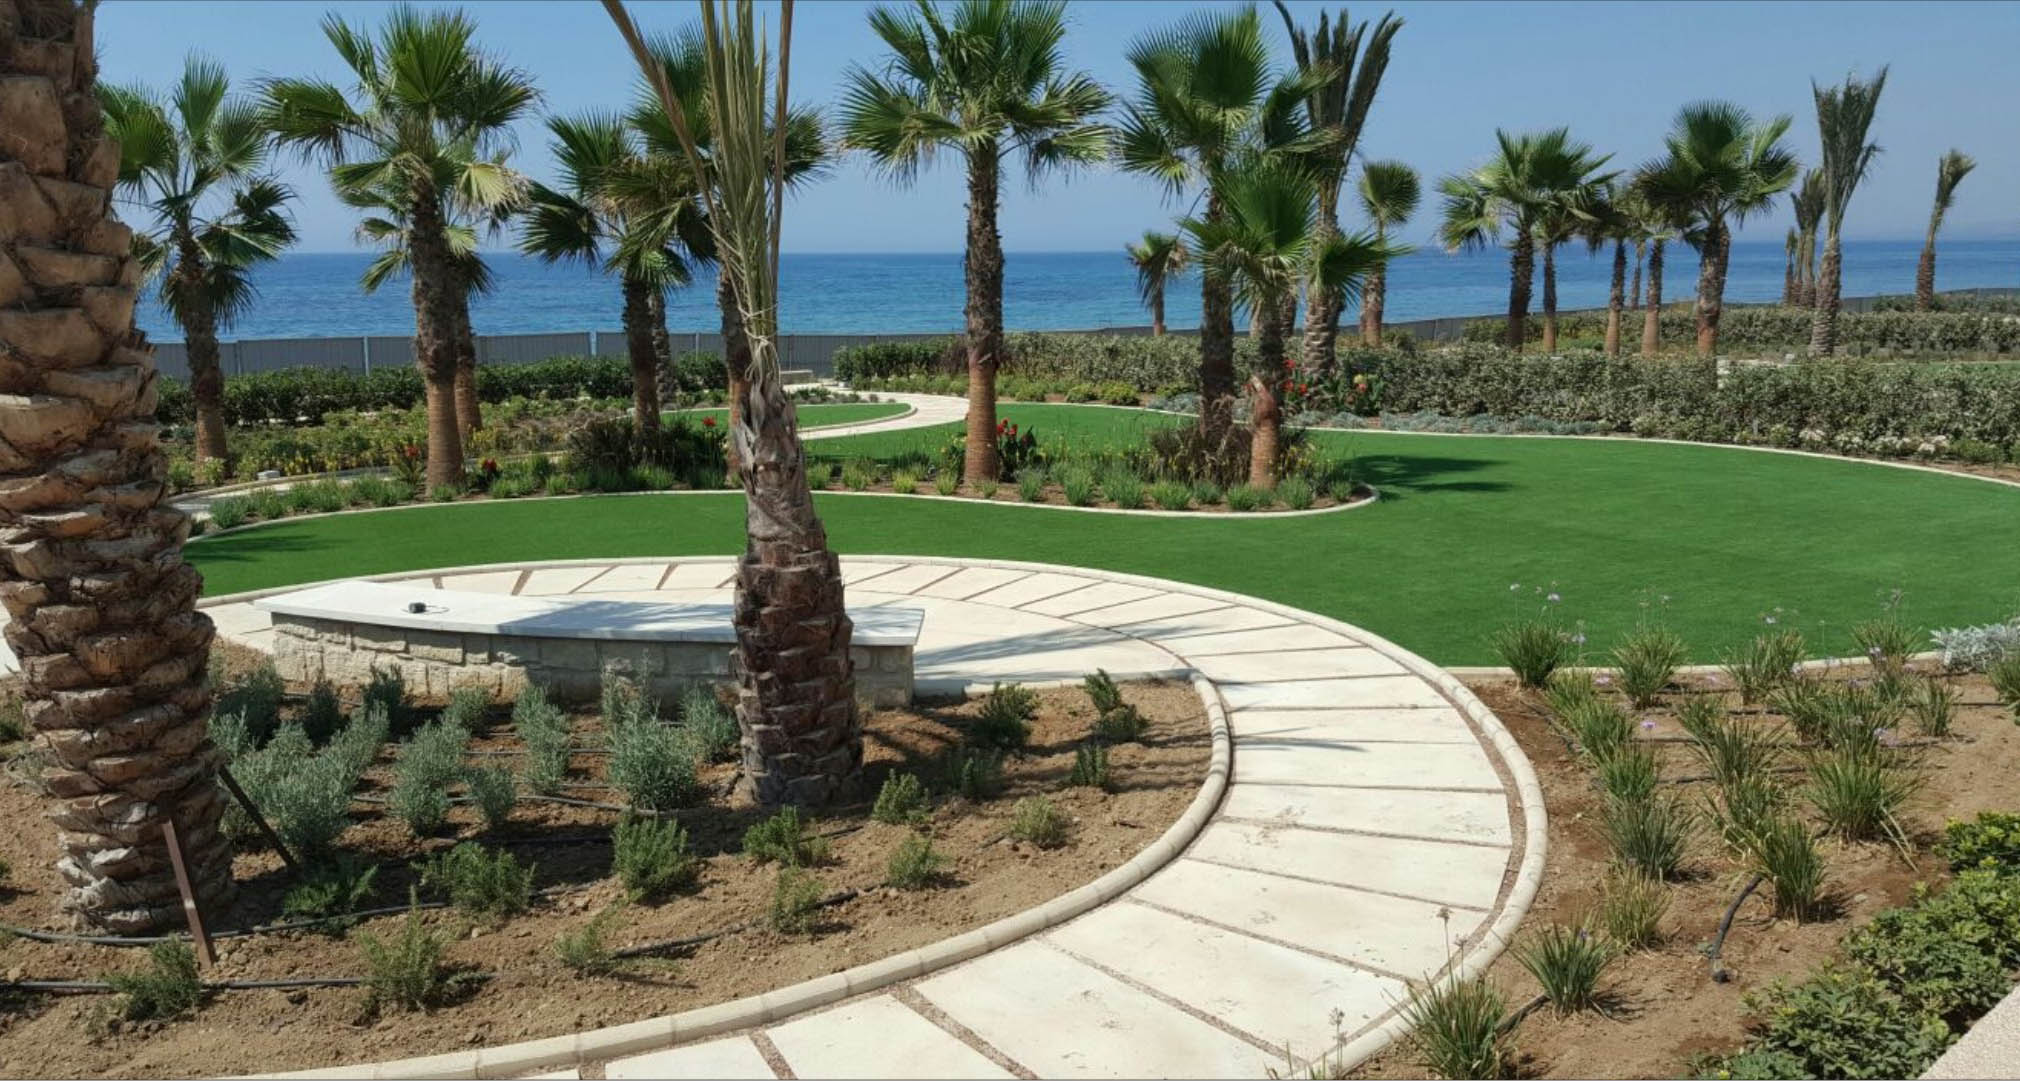 Design Green Landscapes: T.P. Green Architecture: Landscape Design And Consulting